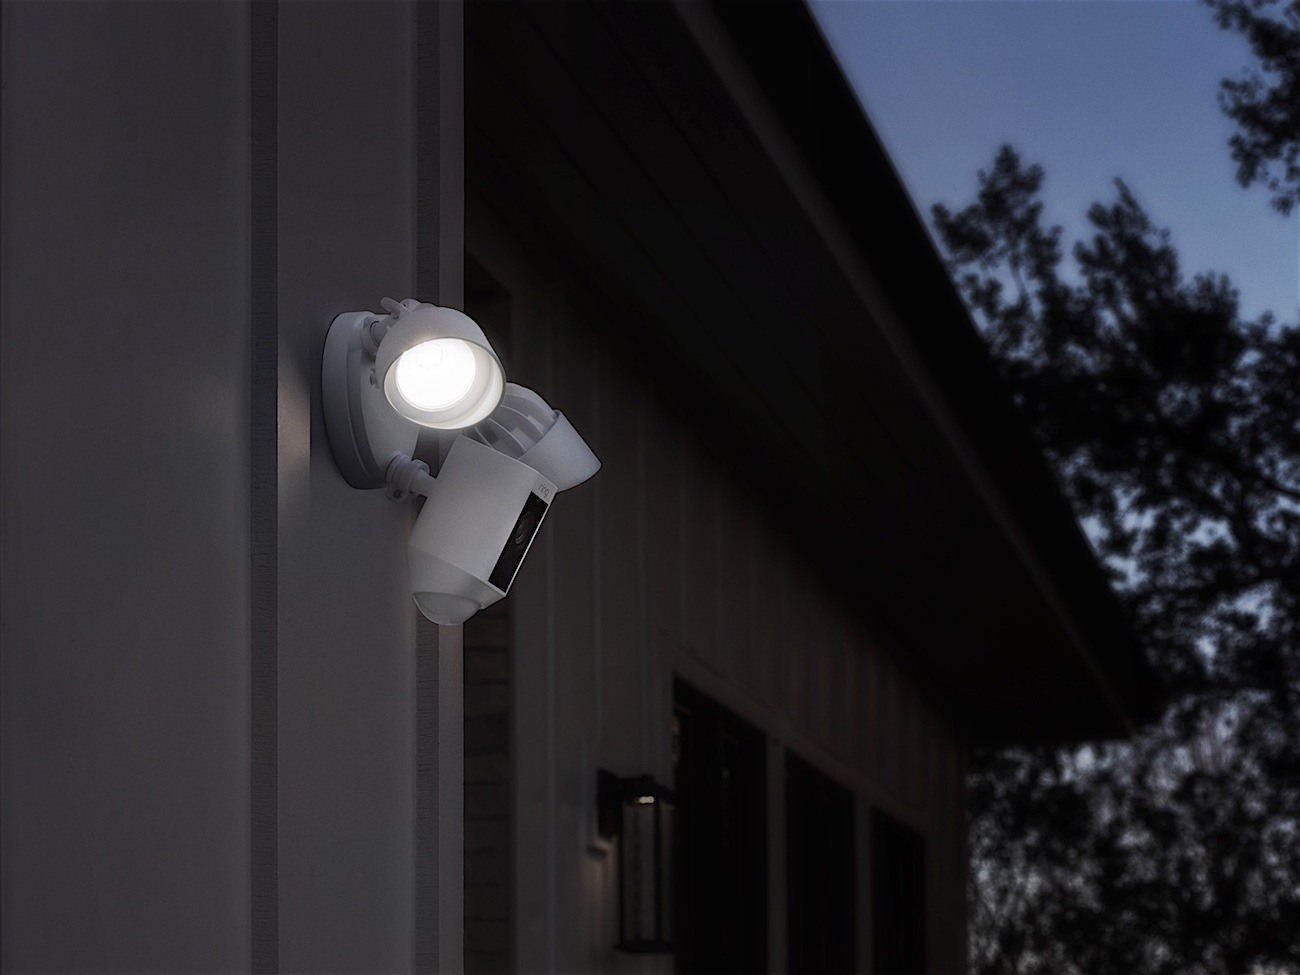 Ring Security Floodlight Camera 187 Gadget Flow